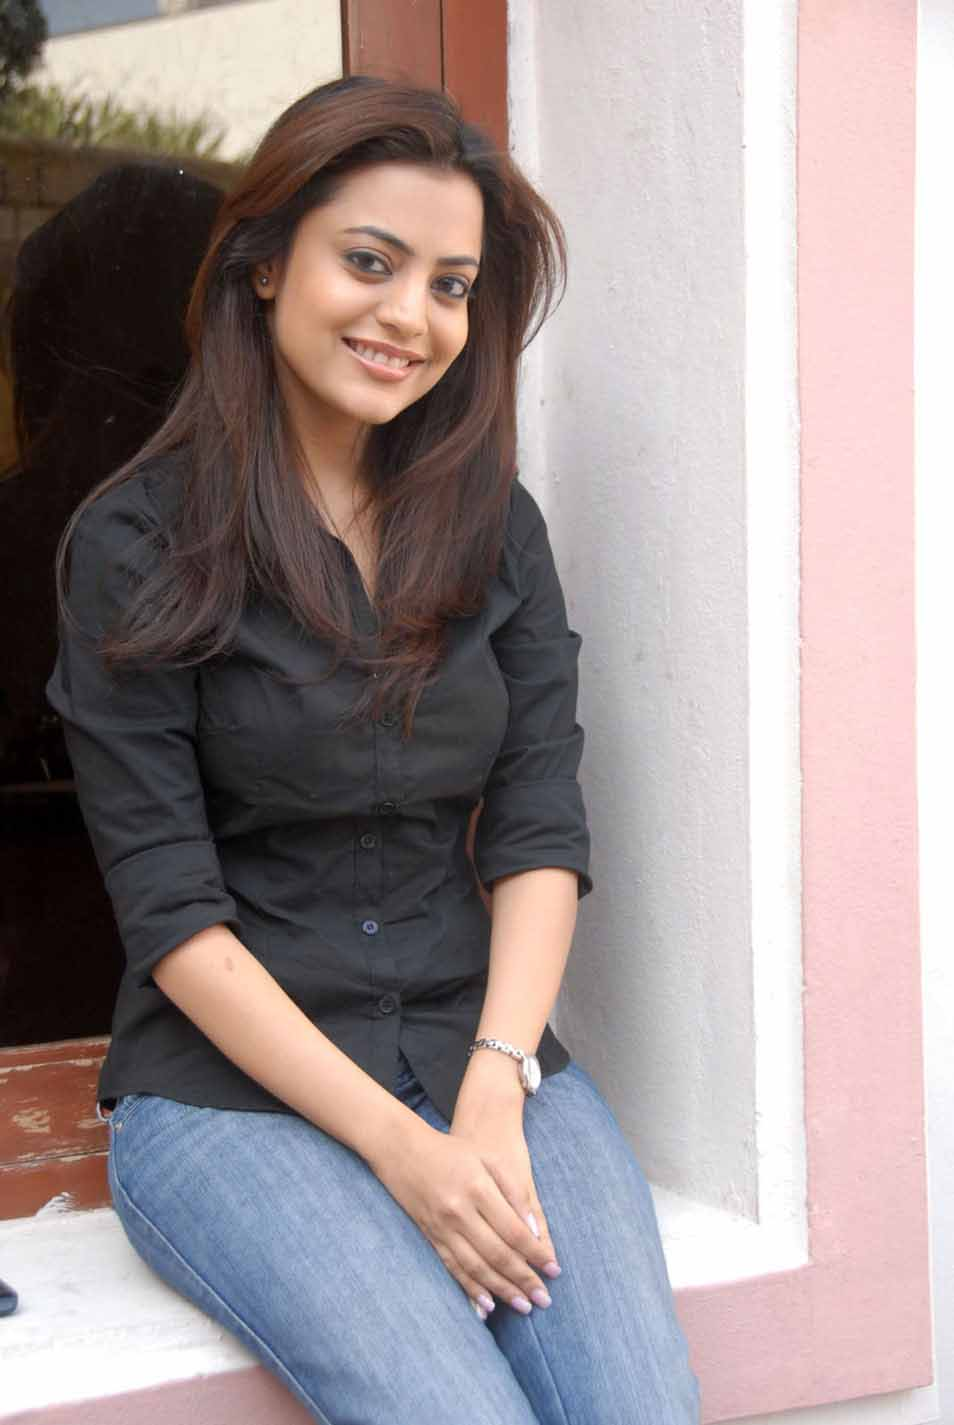 190 Nisha Agarwal Sister Of Kagal Agarwal Hot Sexy -6110